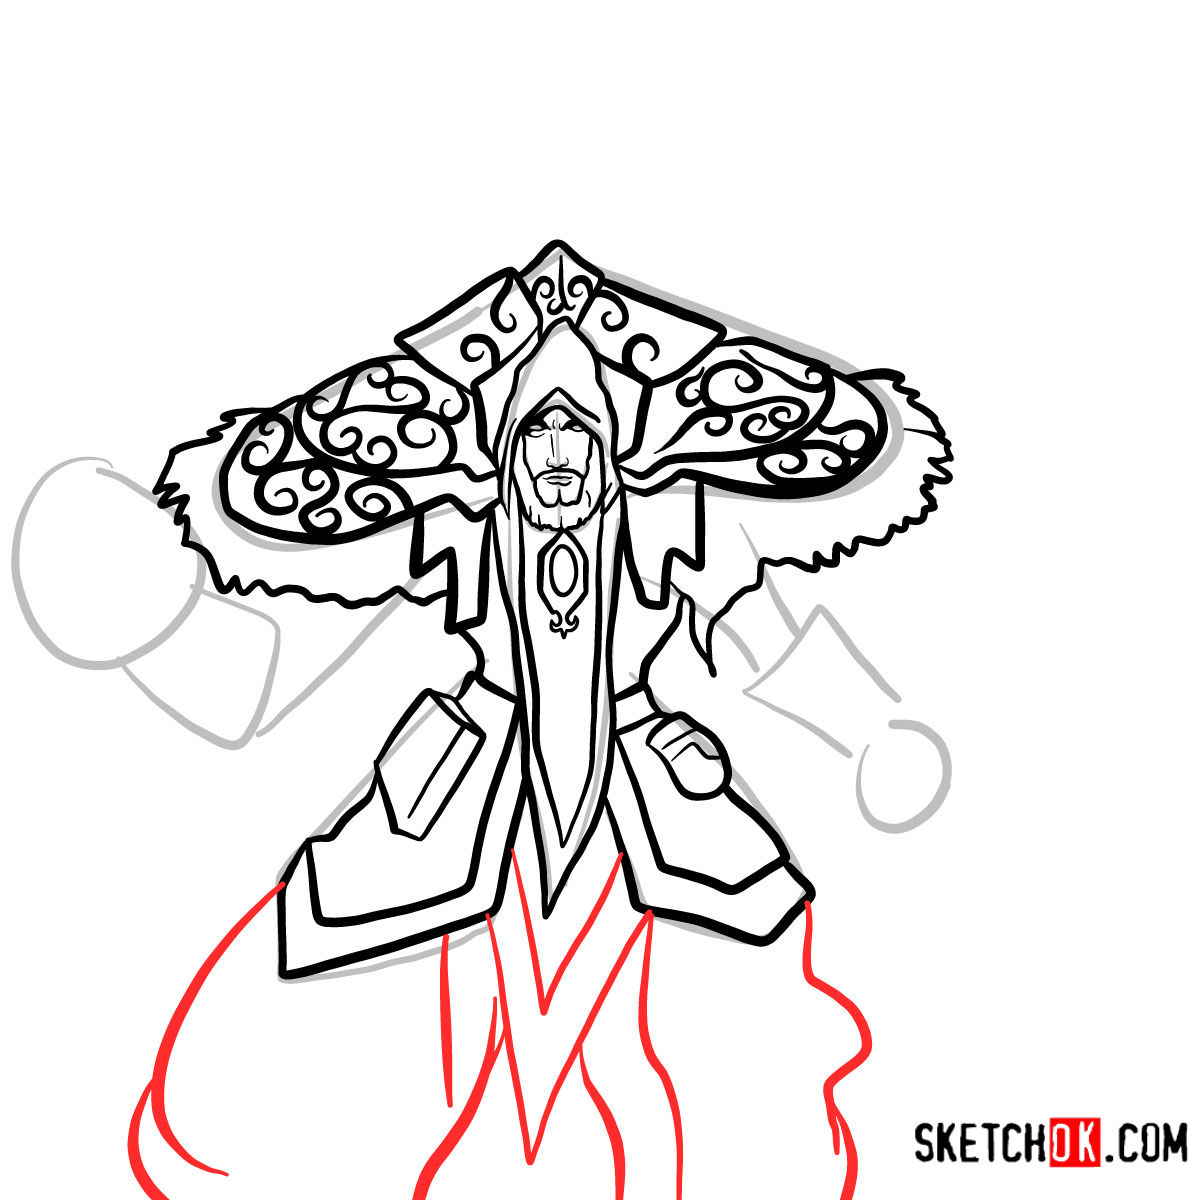 How to draw Magus Medivh | World of Warcraft - step 11